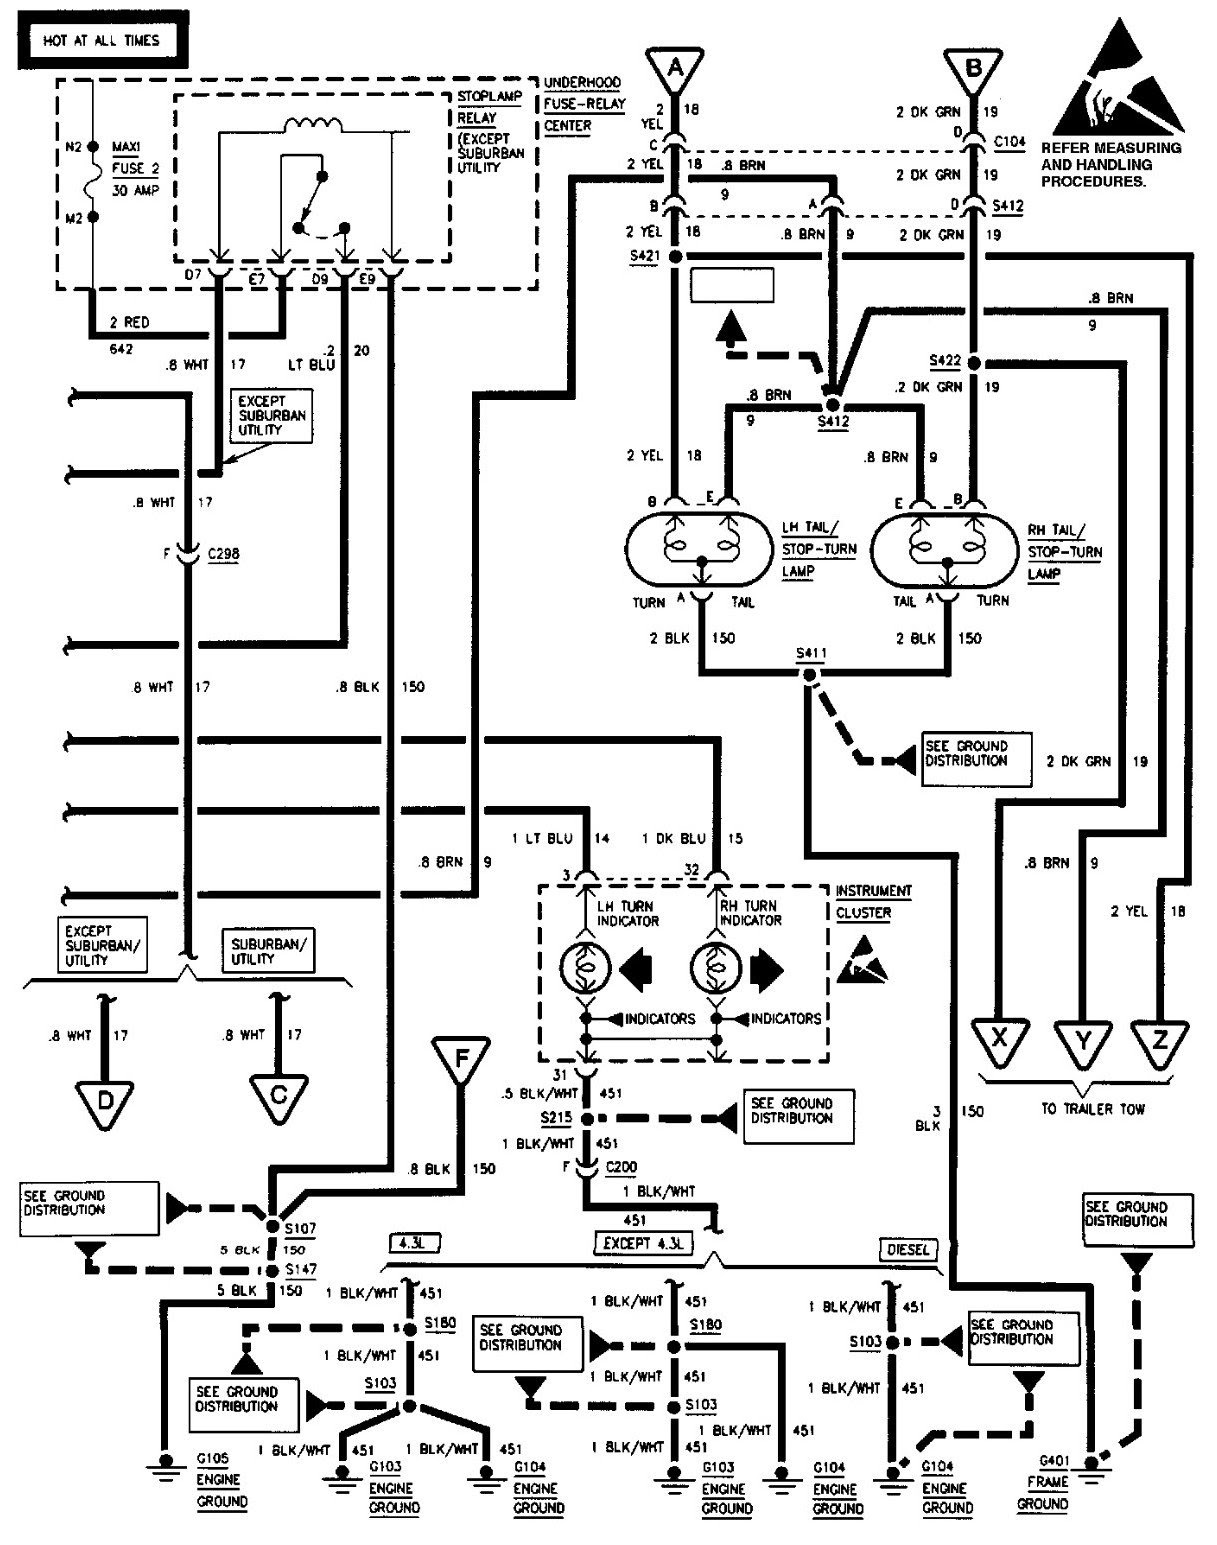 Radio Wiring Diagram On 1997 Tahoe Diagram Base Website 1997 Tahoe -  LABELEDHEARTDIAGRAM.RIFUGIDELLAROSA.ITDiagram Base Website Full Edition - rifugidellarosa